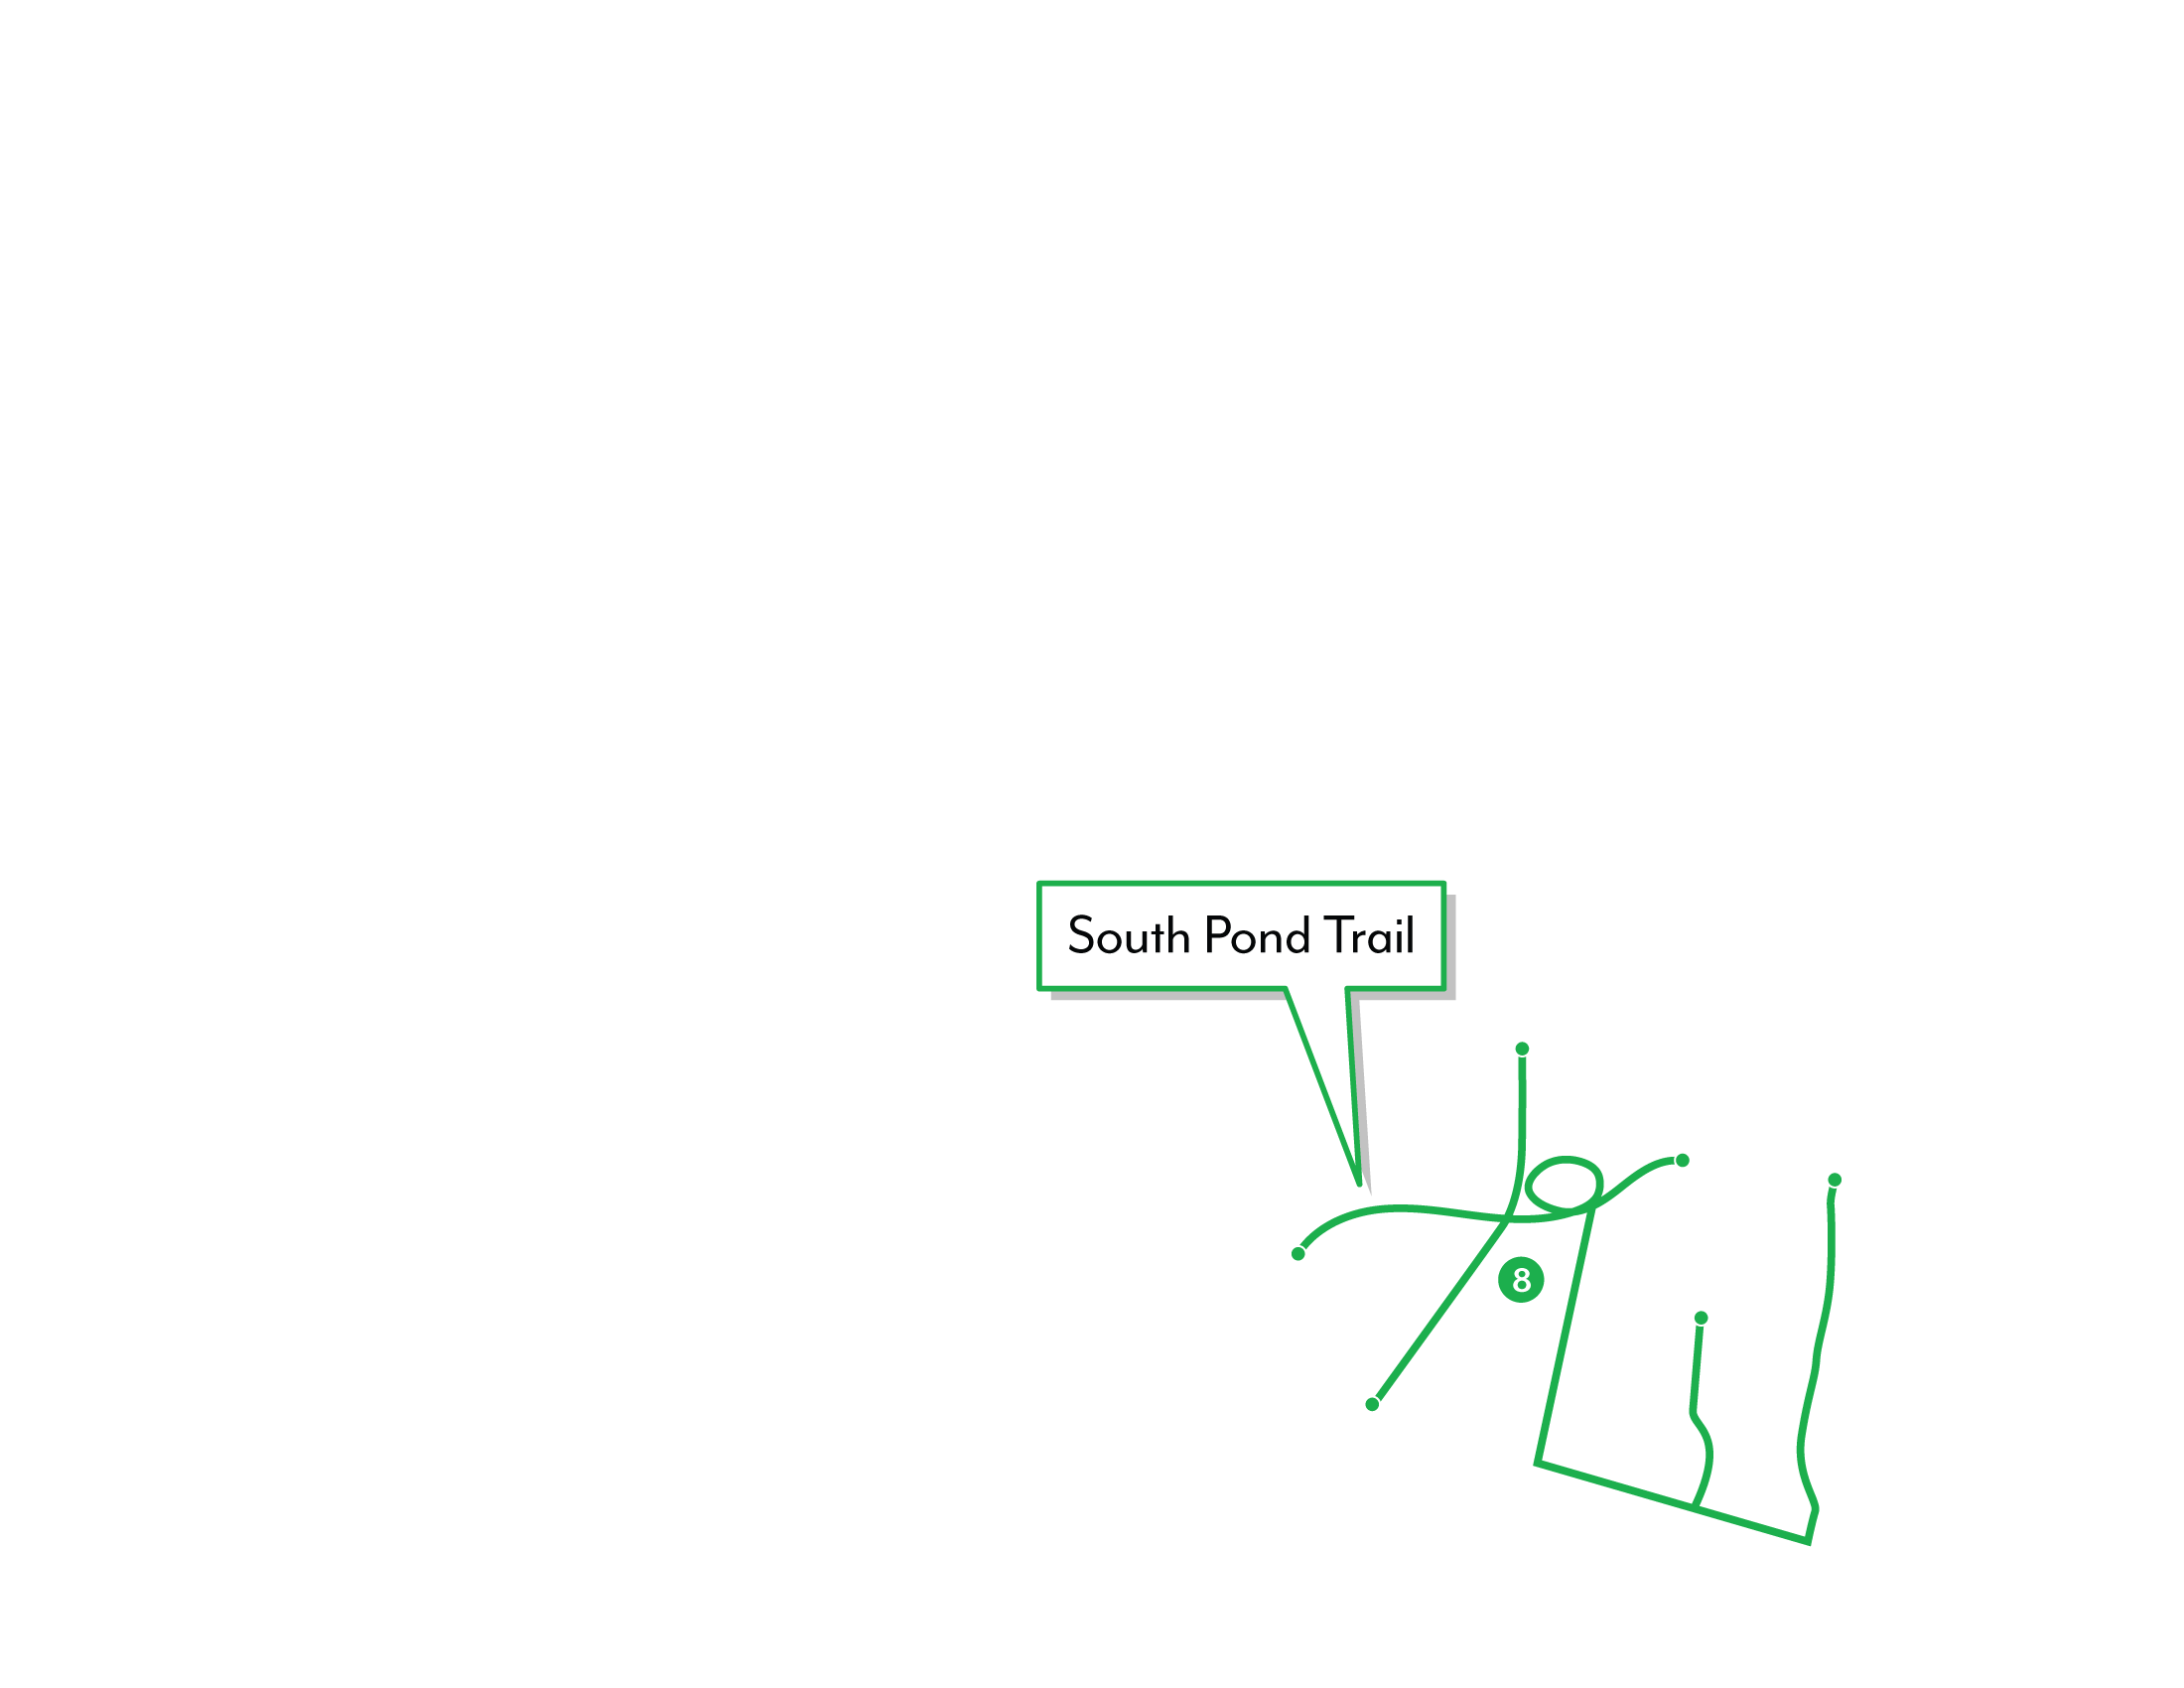 Shearwater graphic depicting the South Pond Trail